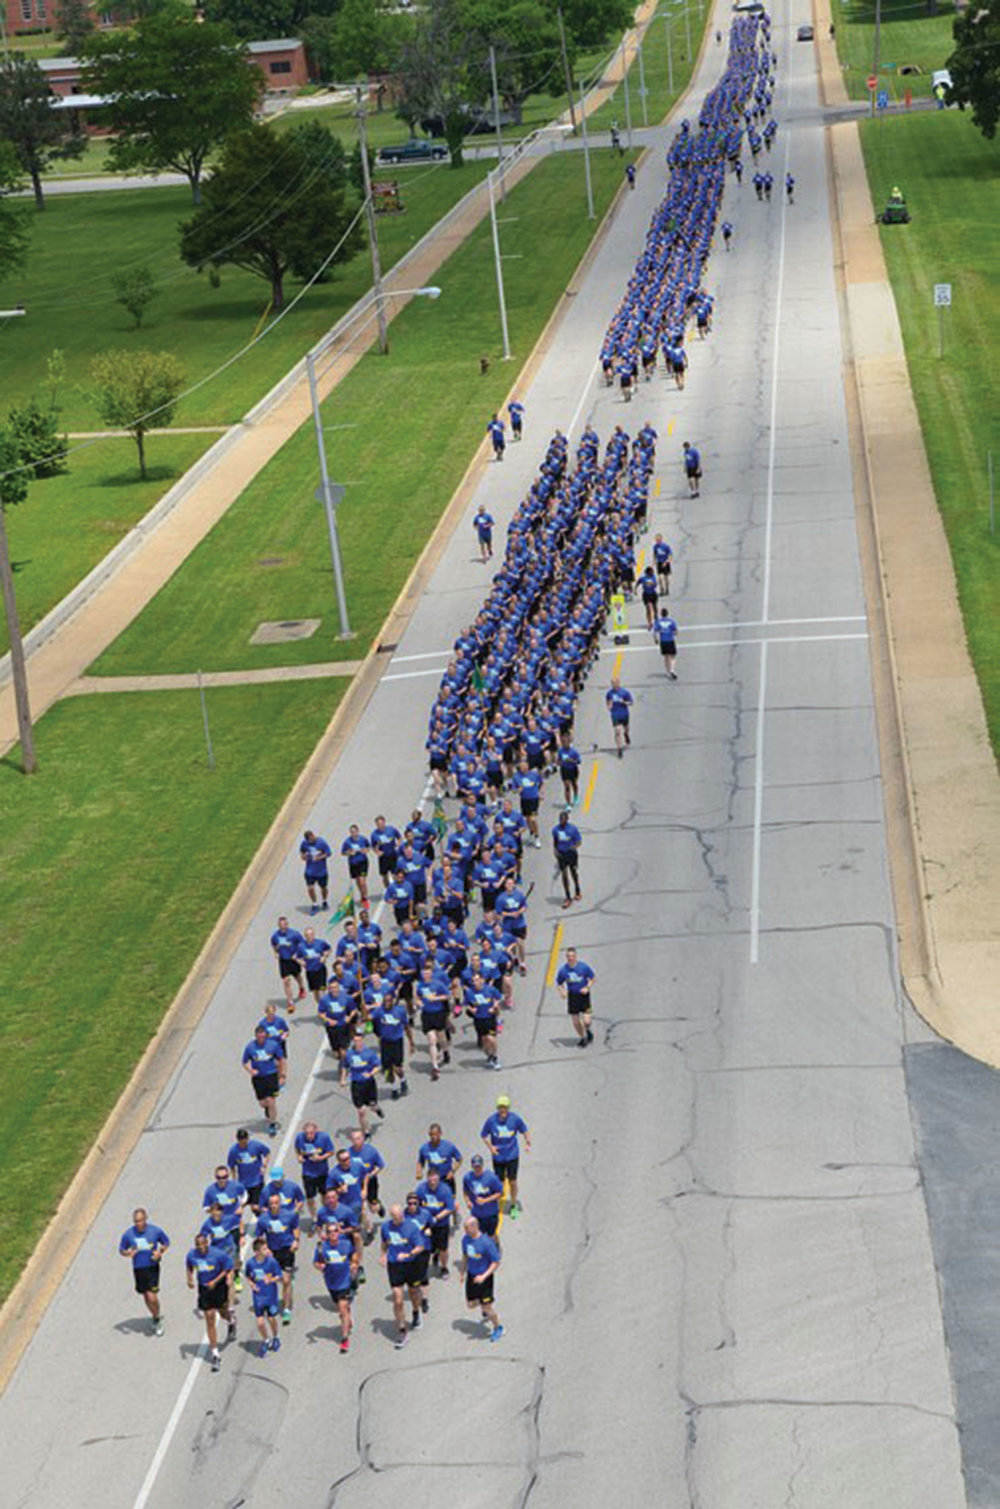 More than 1,700 runners took part in the Law Enforcement Torch Run (R) at Fort Leonard Wood